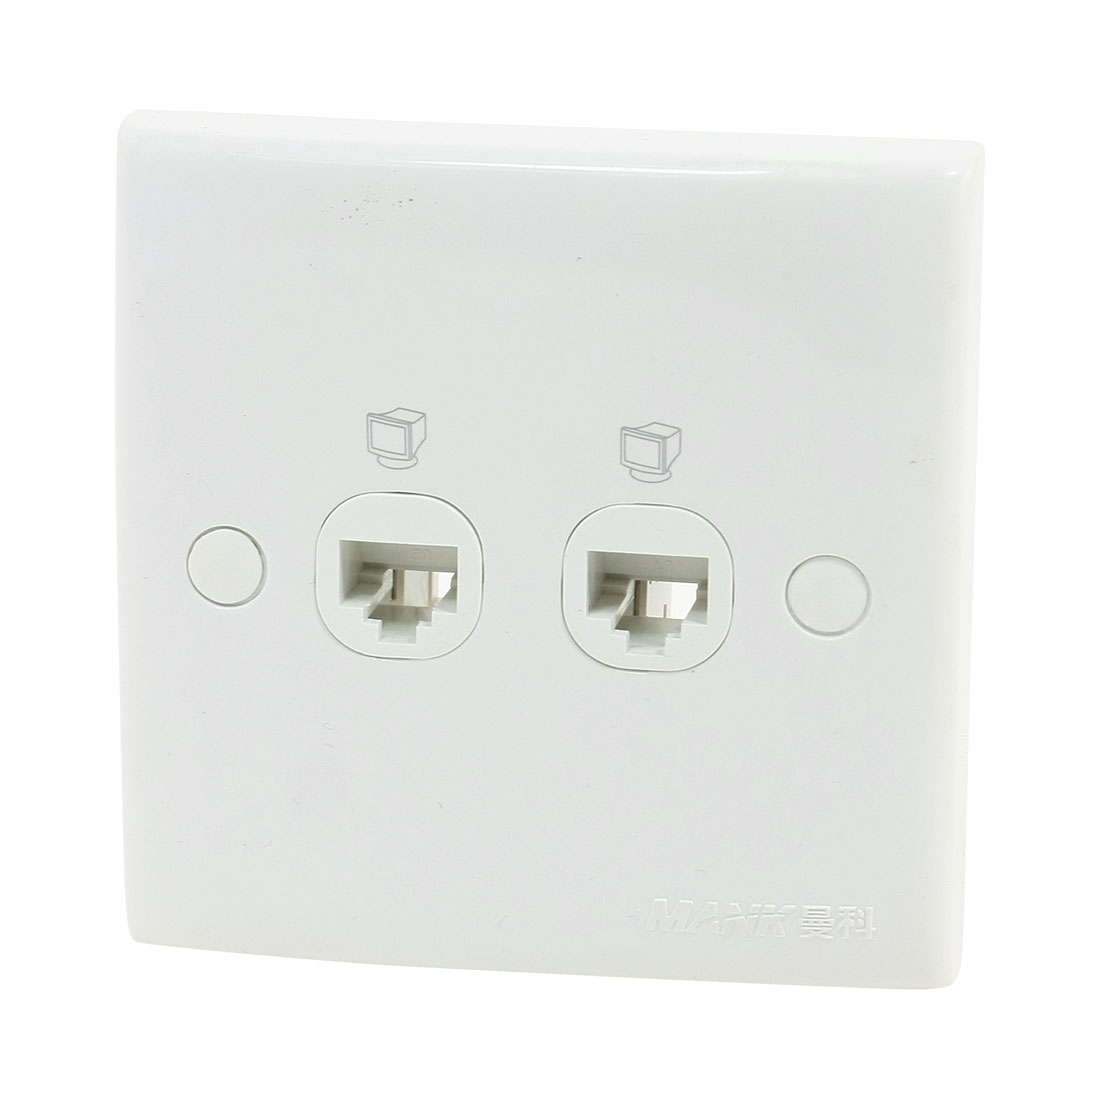 Plastic Shell RJ45 8P8C Network Wall Mount Plate Double Outlet Socket